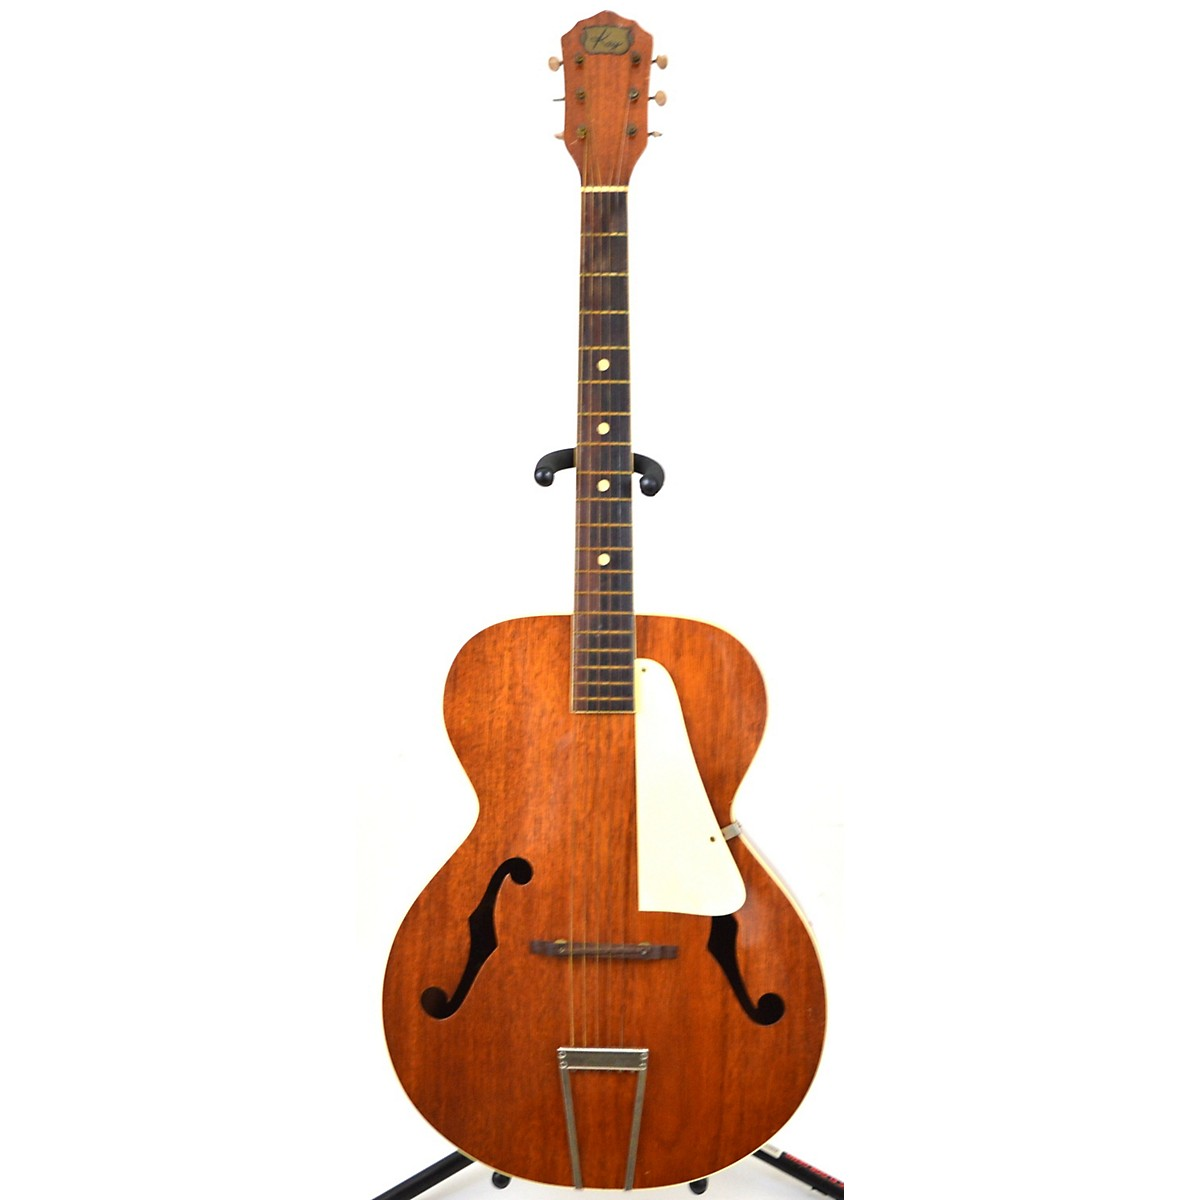 Kay 1950s Acoustic Archtop Acoustic Guitar